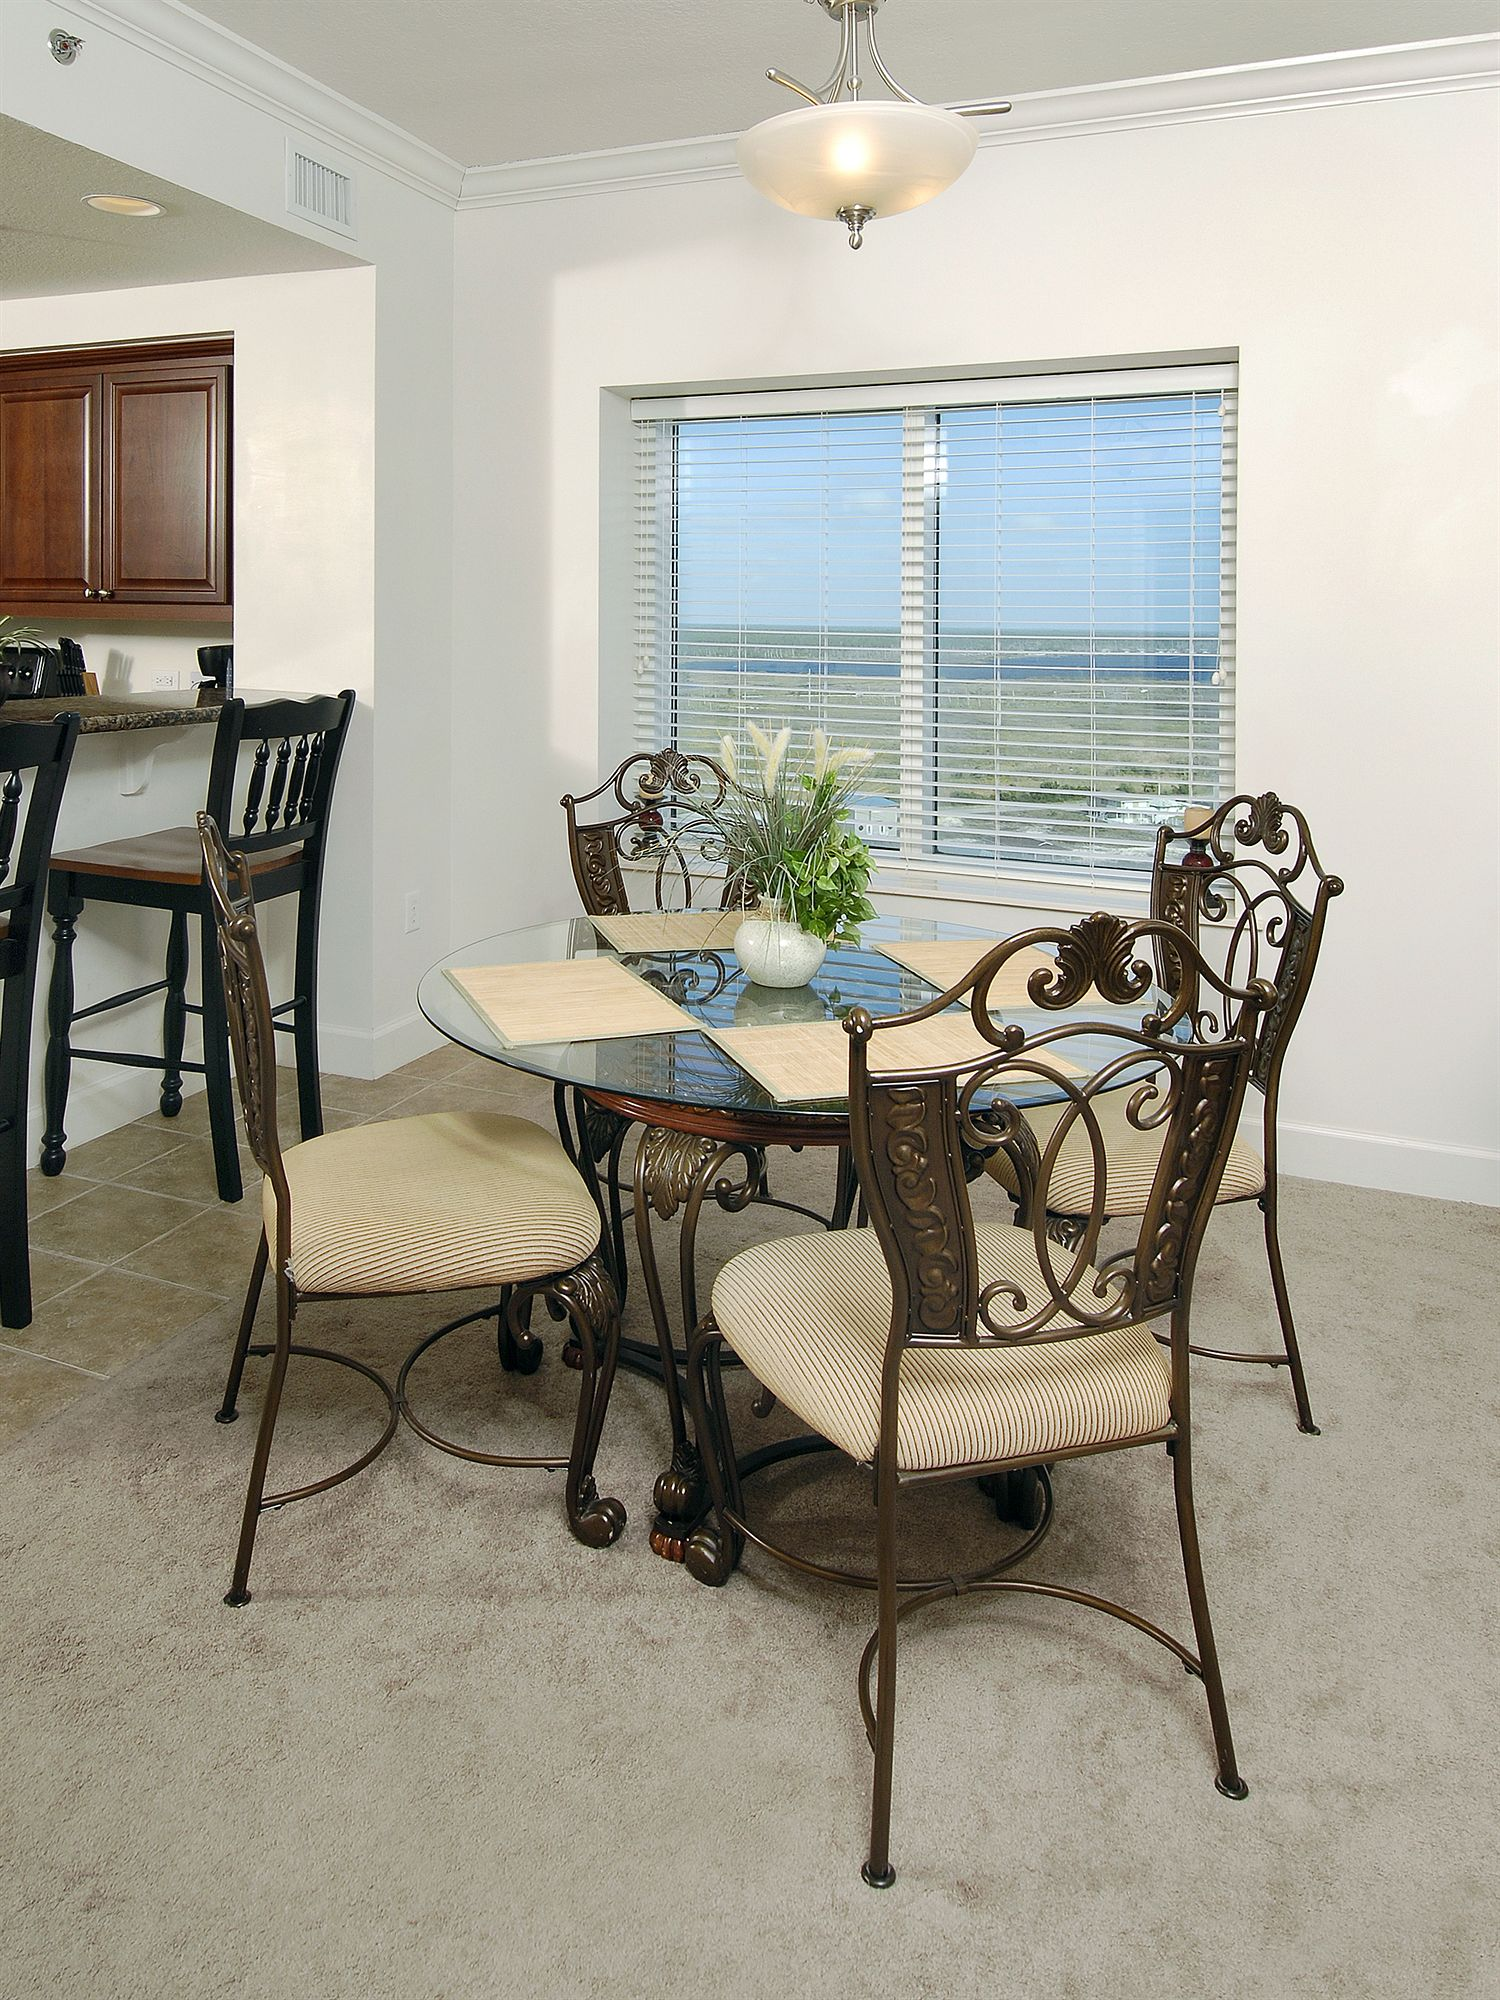 Seawinds Condominiums by Wyndham Vacation Rentals in Gulf Shores, AL